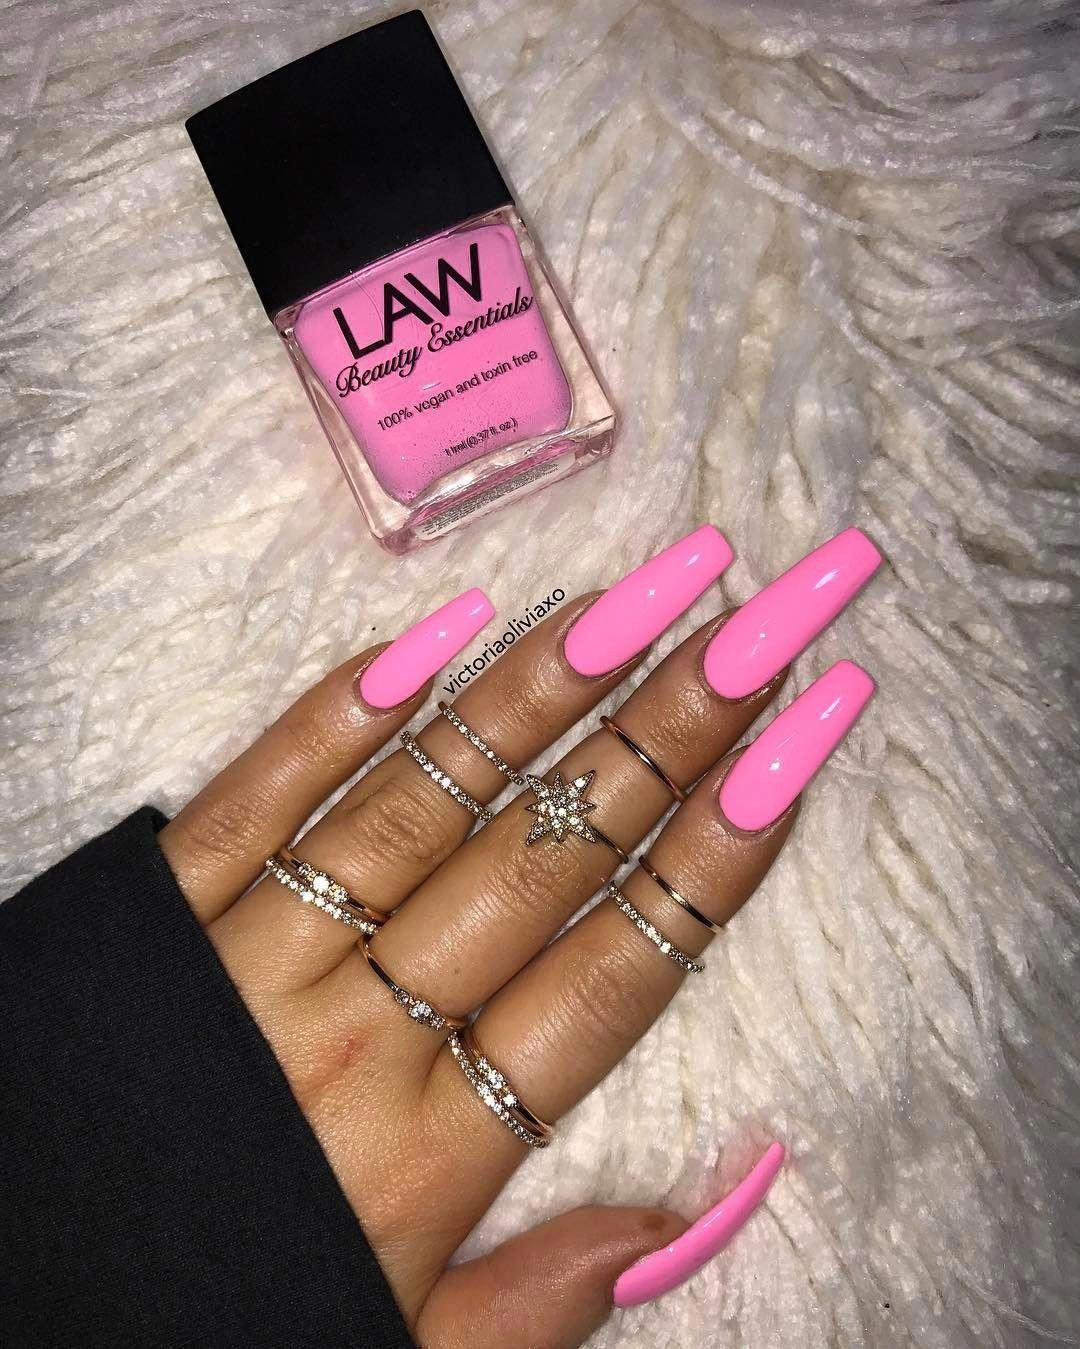 Long Acrylic Nails Which Look Beautiful Longacrylicnails Pink Acrylic Nails Bright Pink Nails Long Square Acrylic Nails